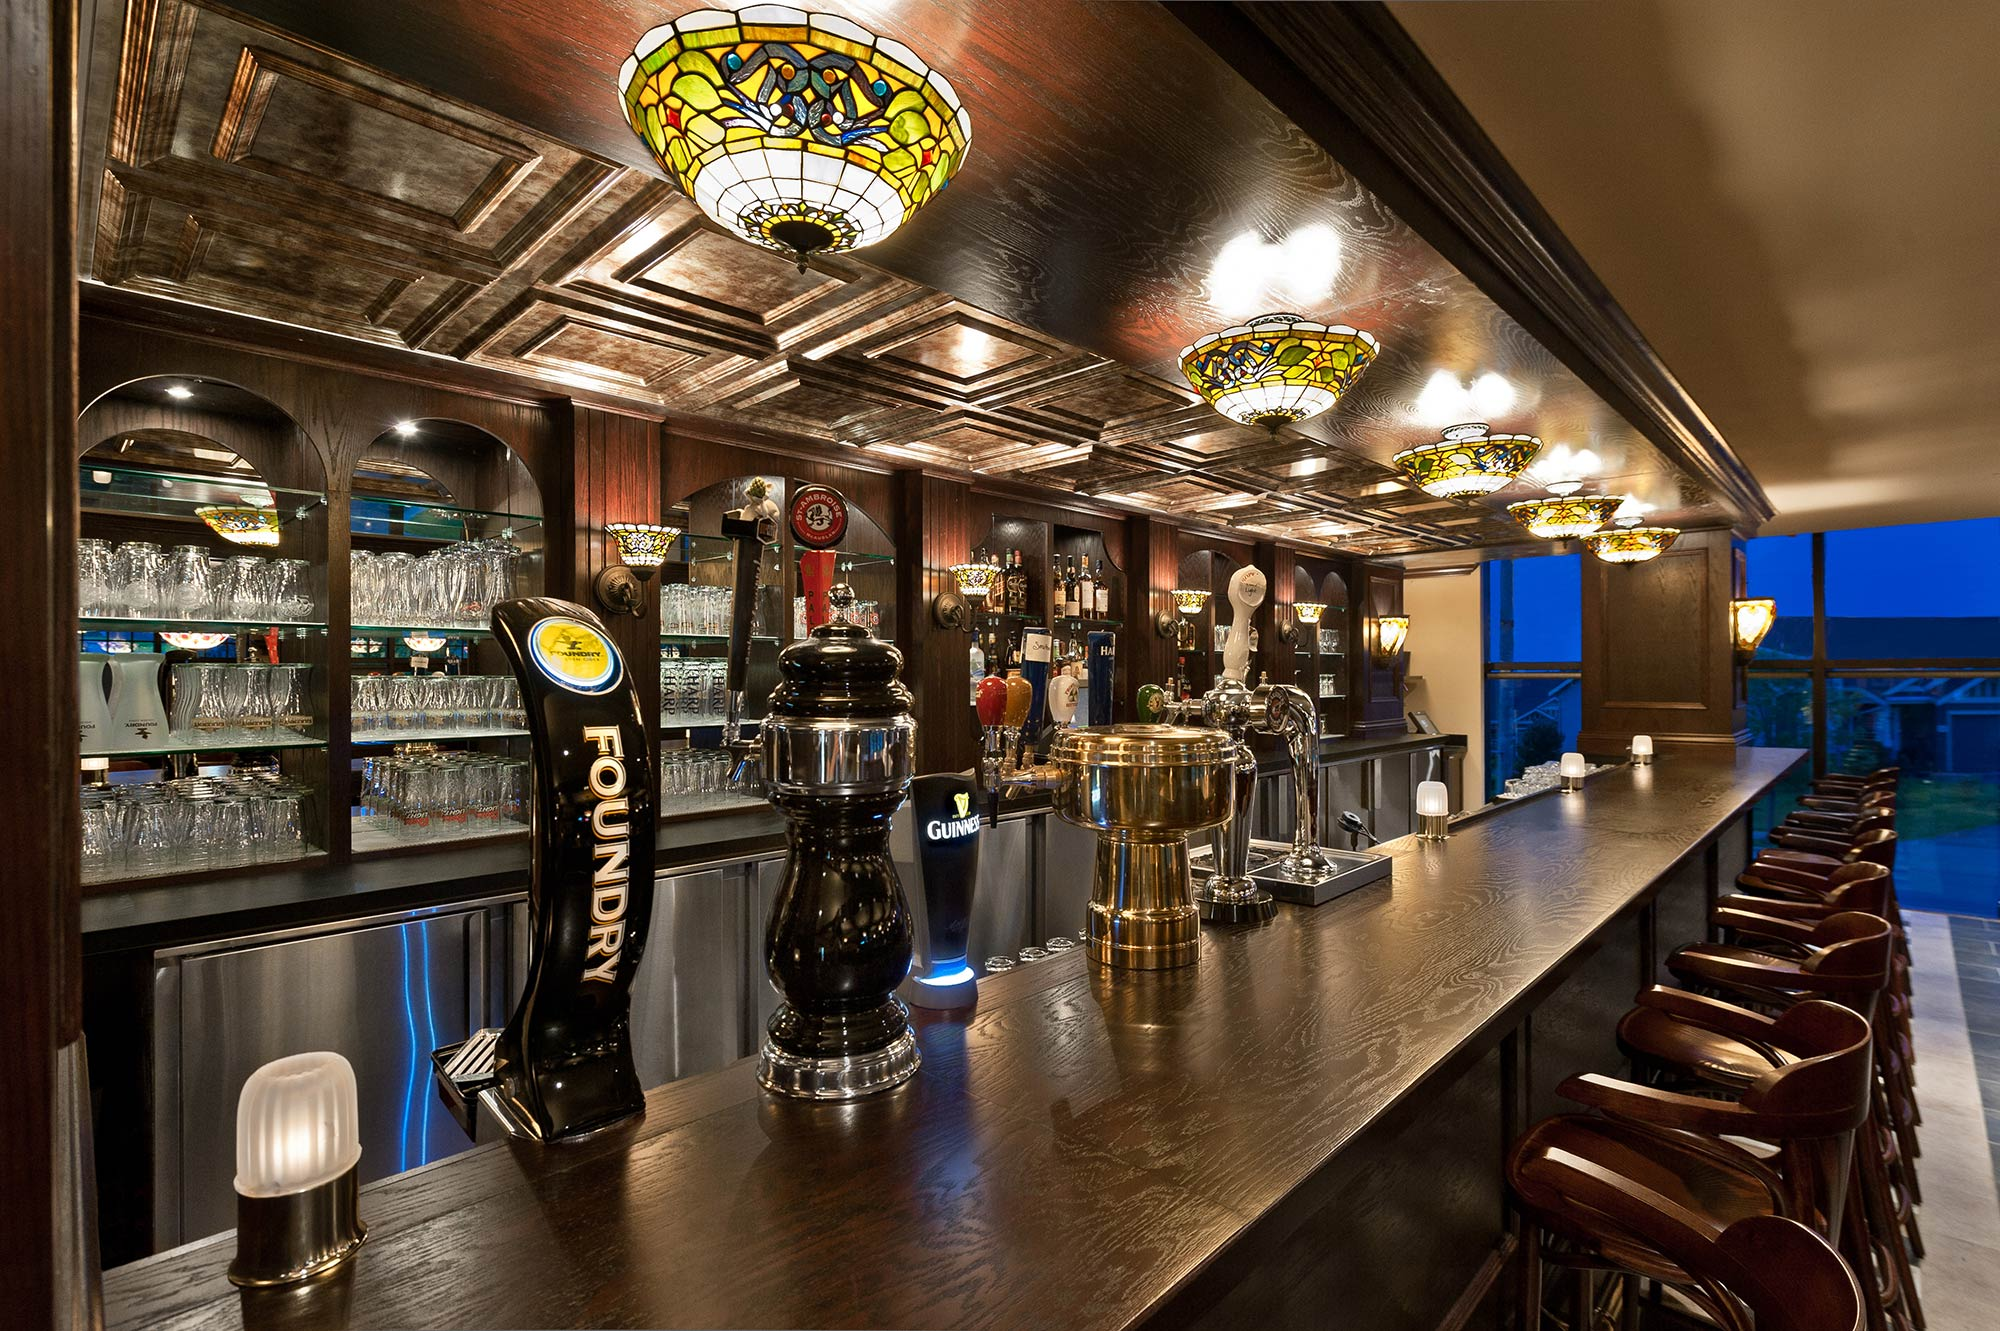 interior-design-restaurant-irish-pub-bar-beer-tapss.jpg